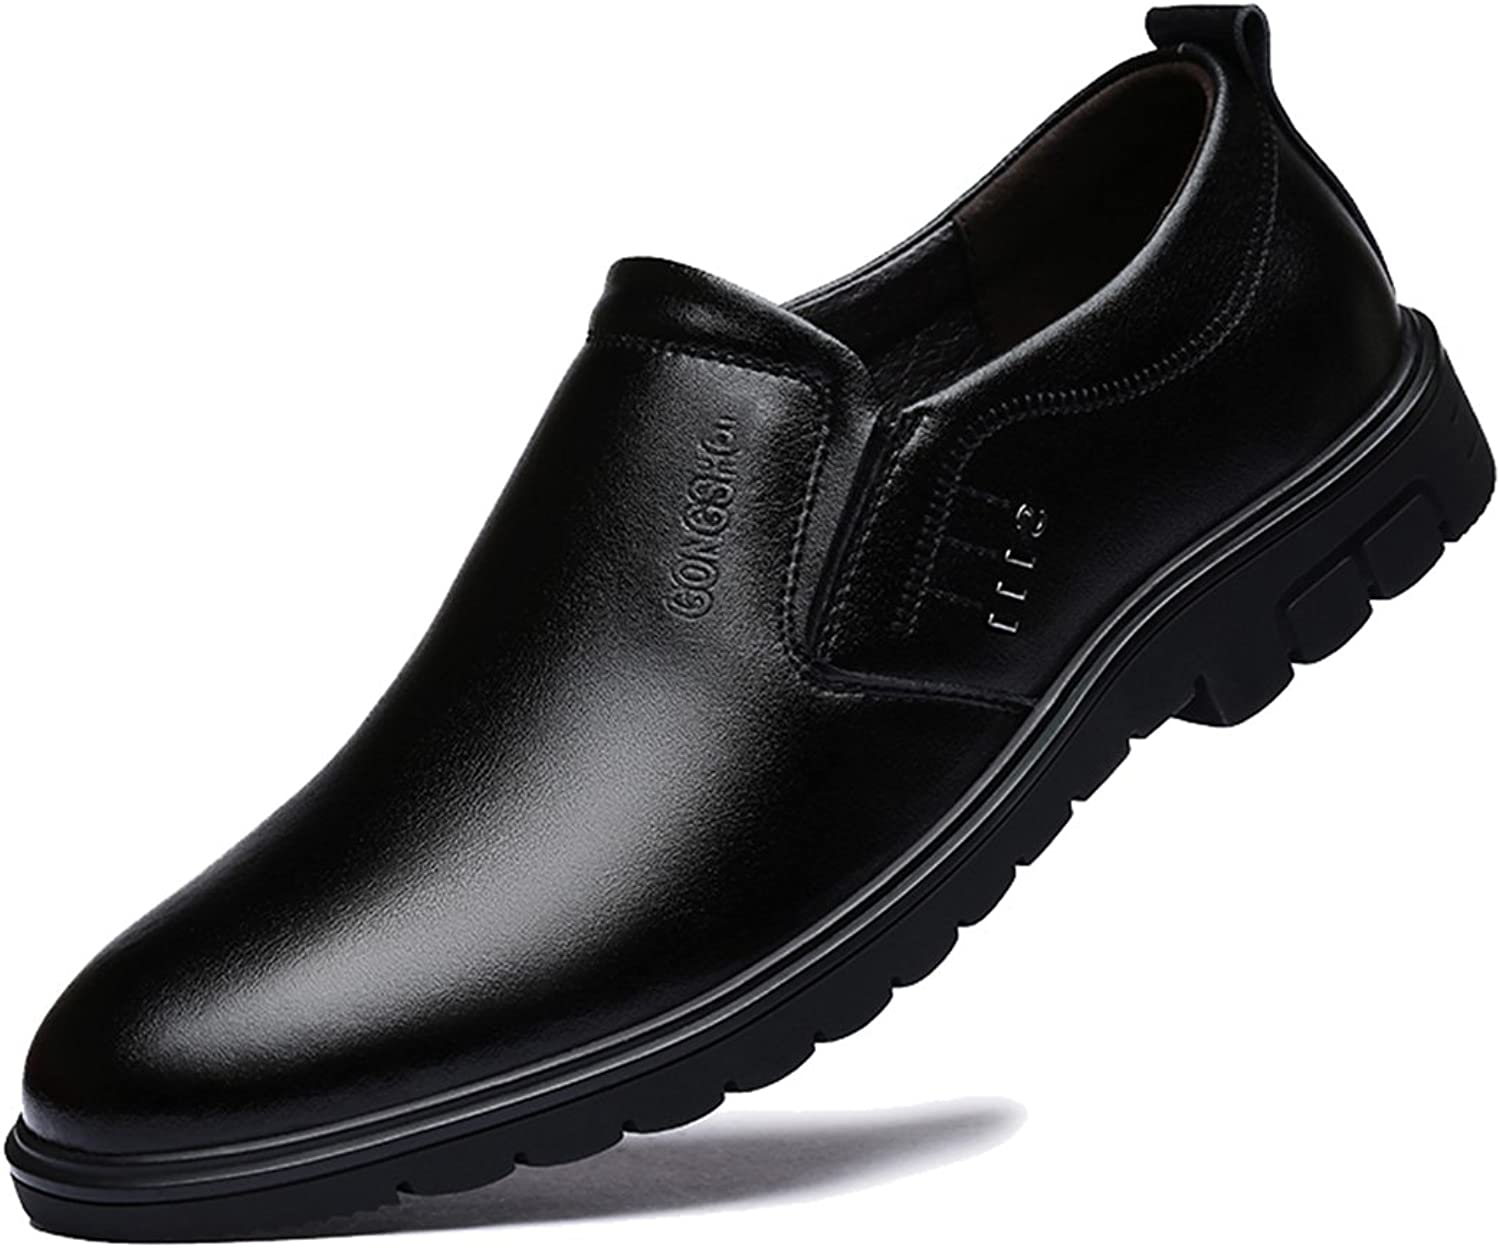 eb6befc72a2b6 Seaoeey Leather shoes Men's Business shoes Father Father Father ...